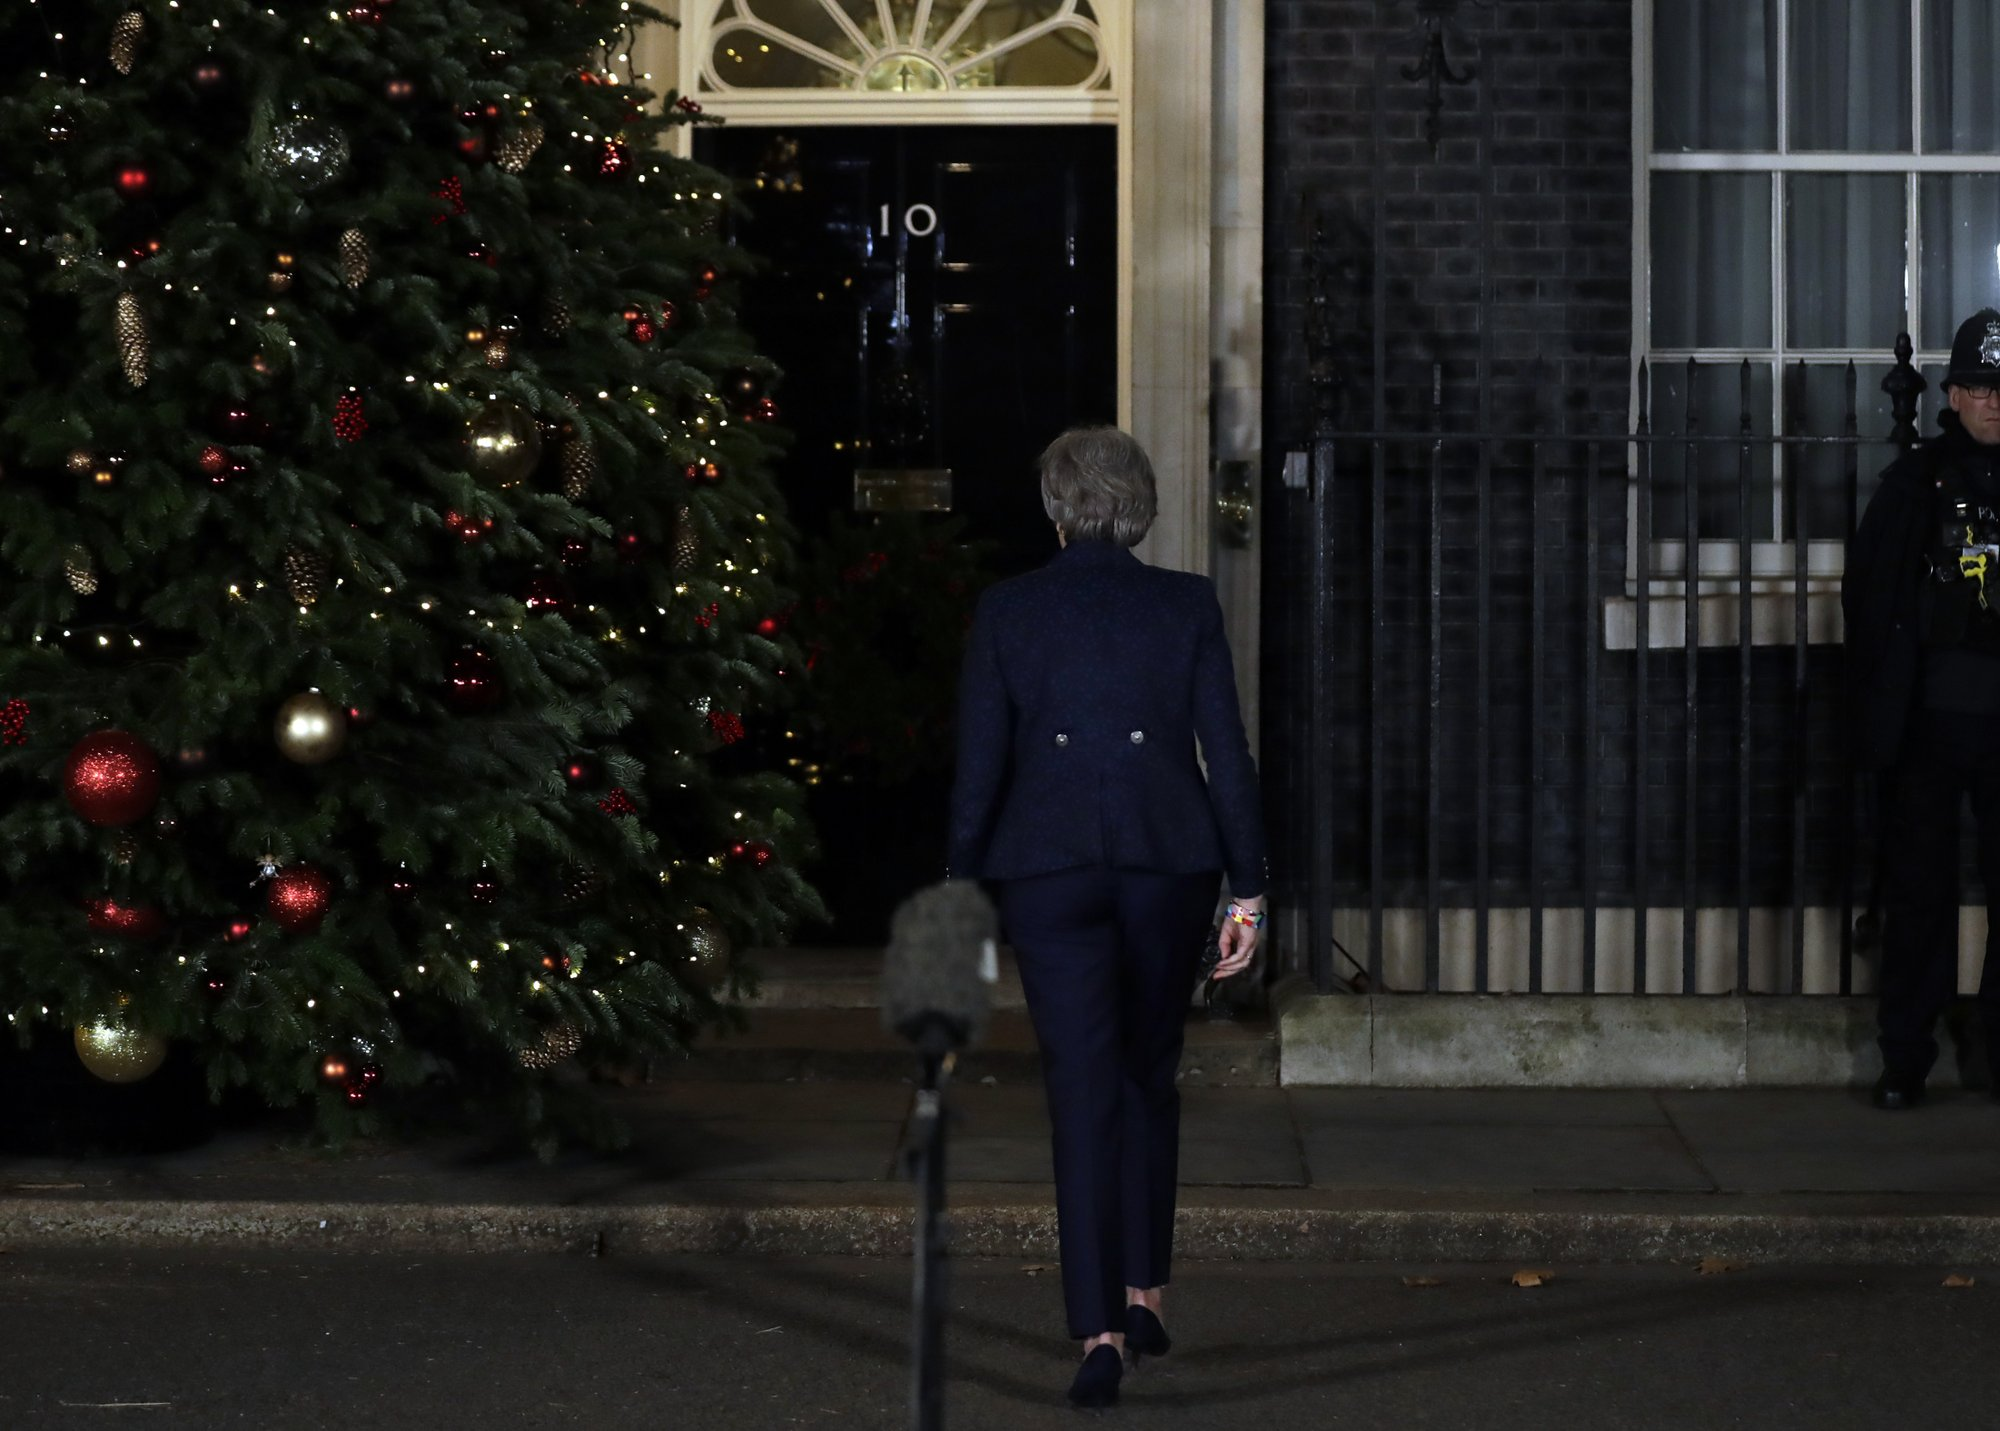 As May faces leadership vote, a look at what happens next